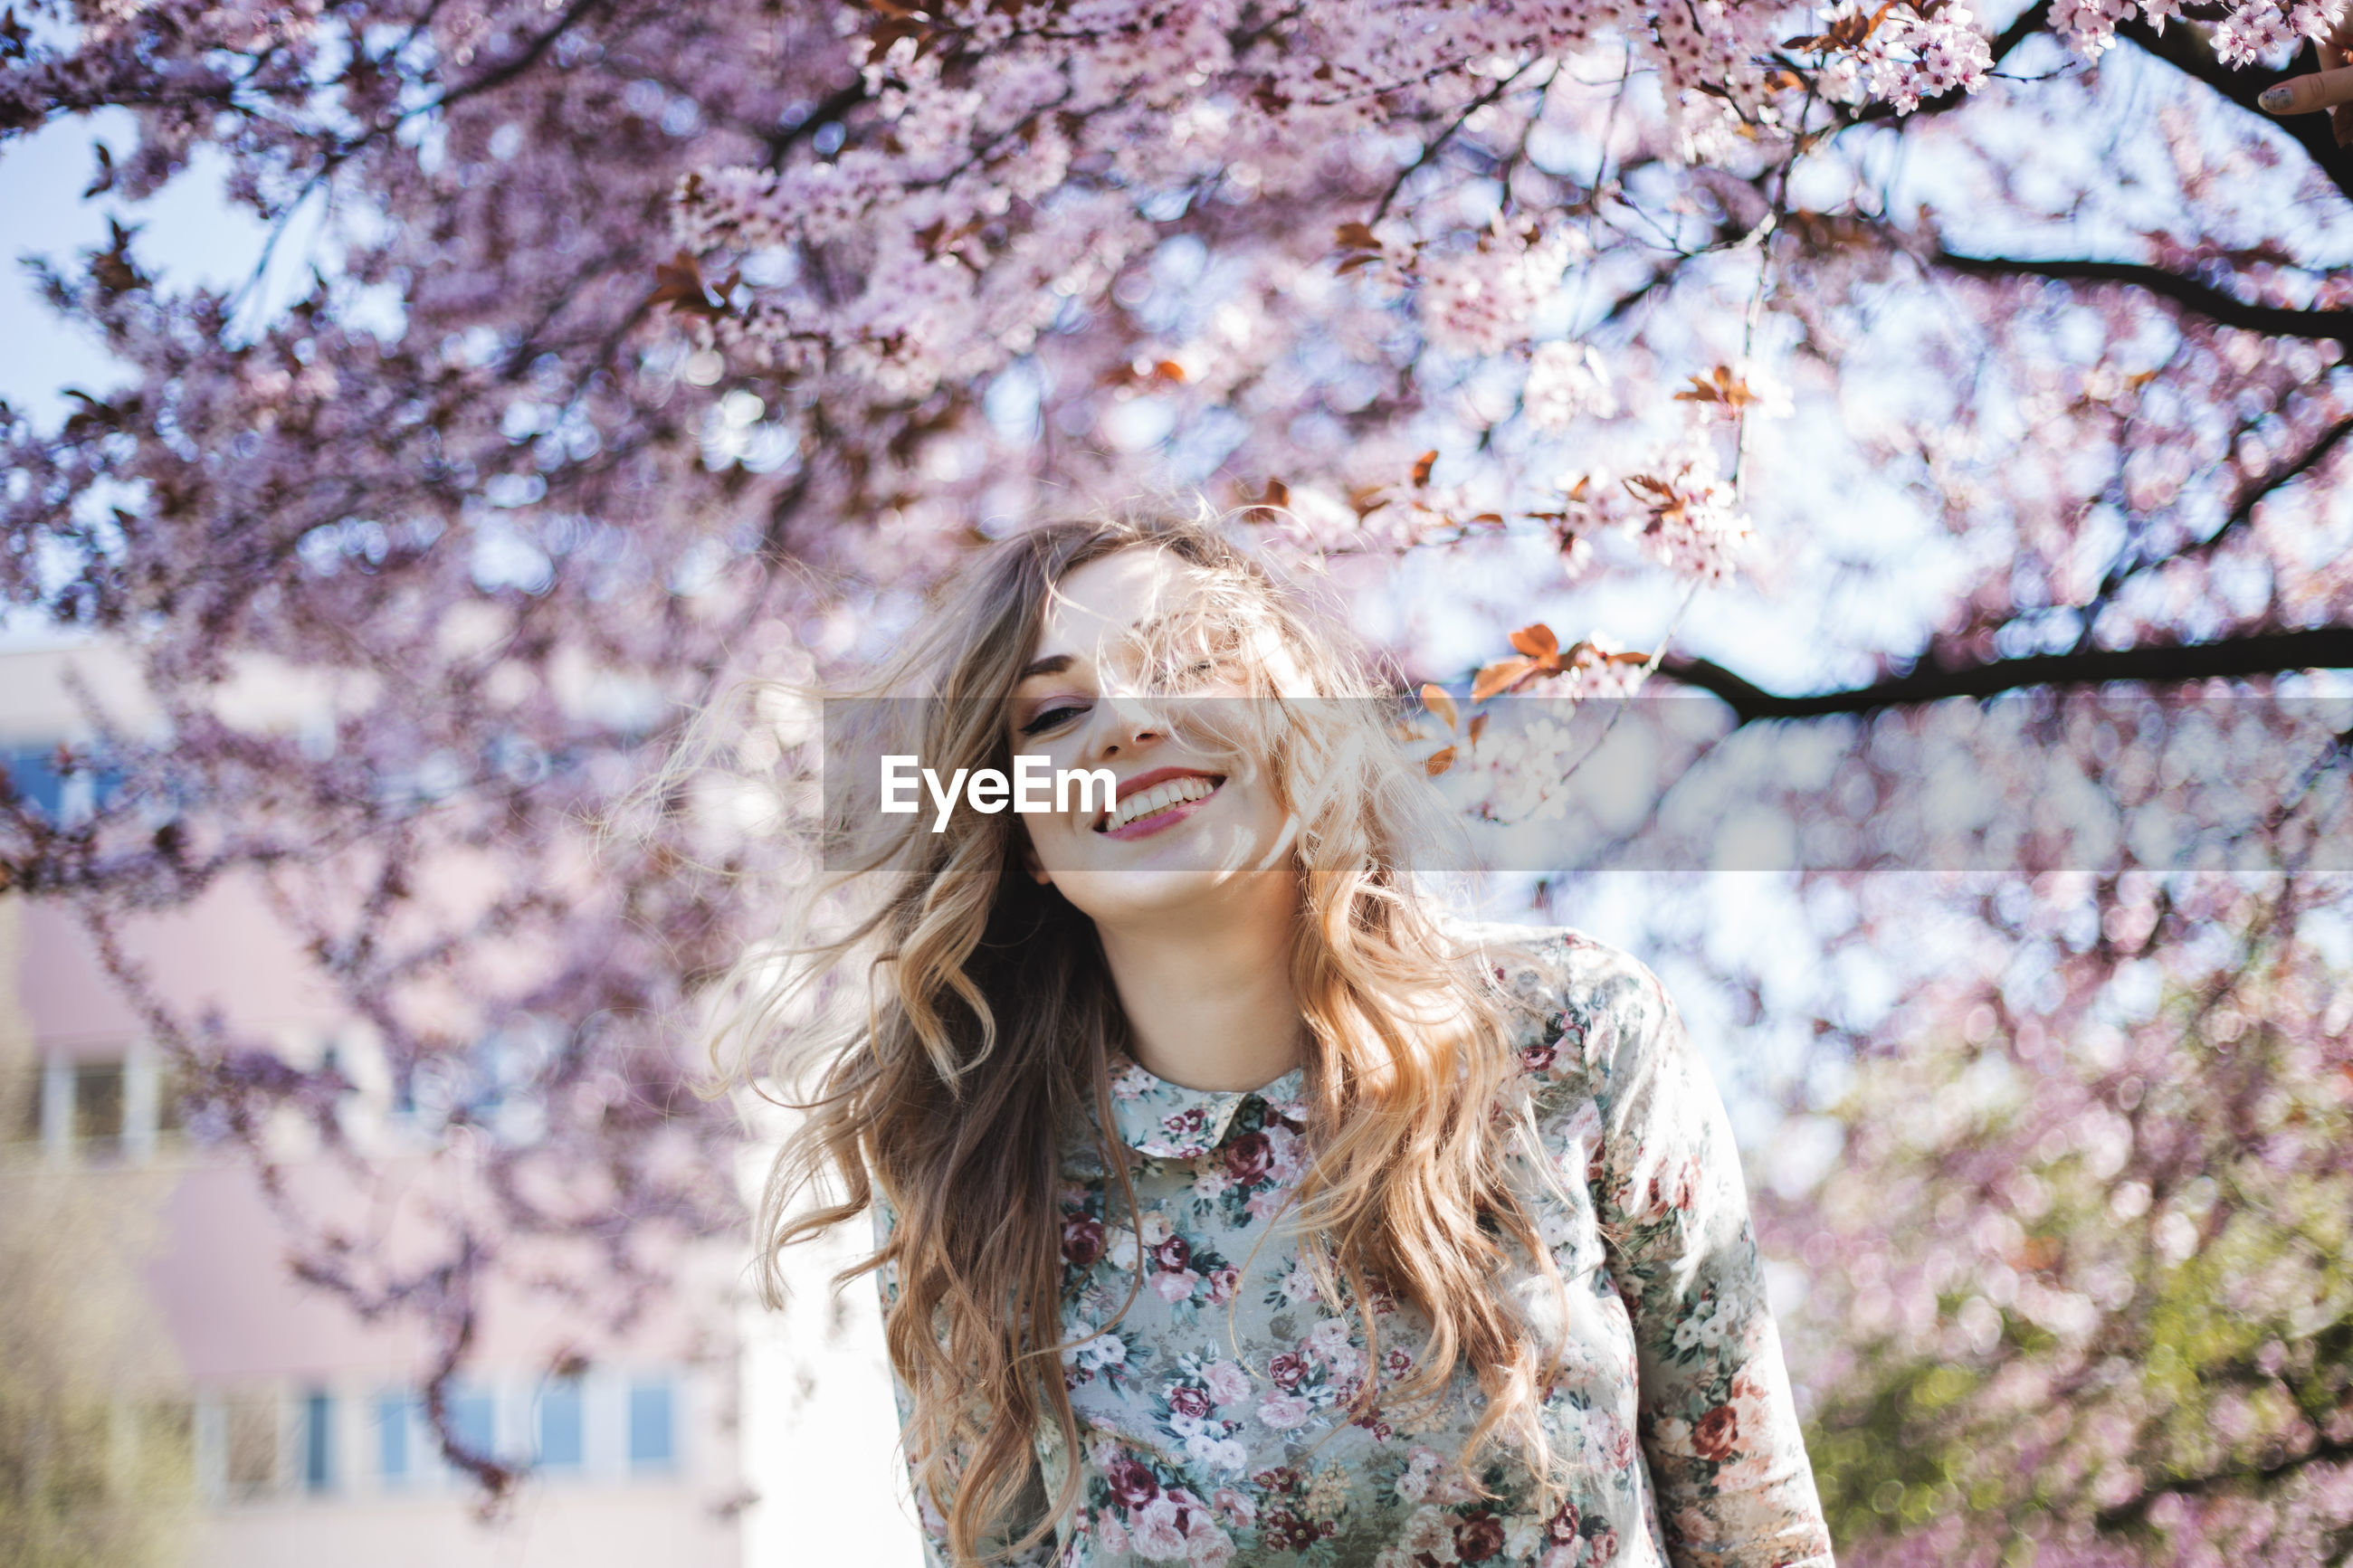 PORTRAIT OF SMILING YOUNG WOMAN WITH CHERRY BLOSSOM